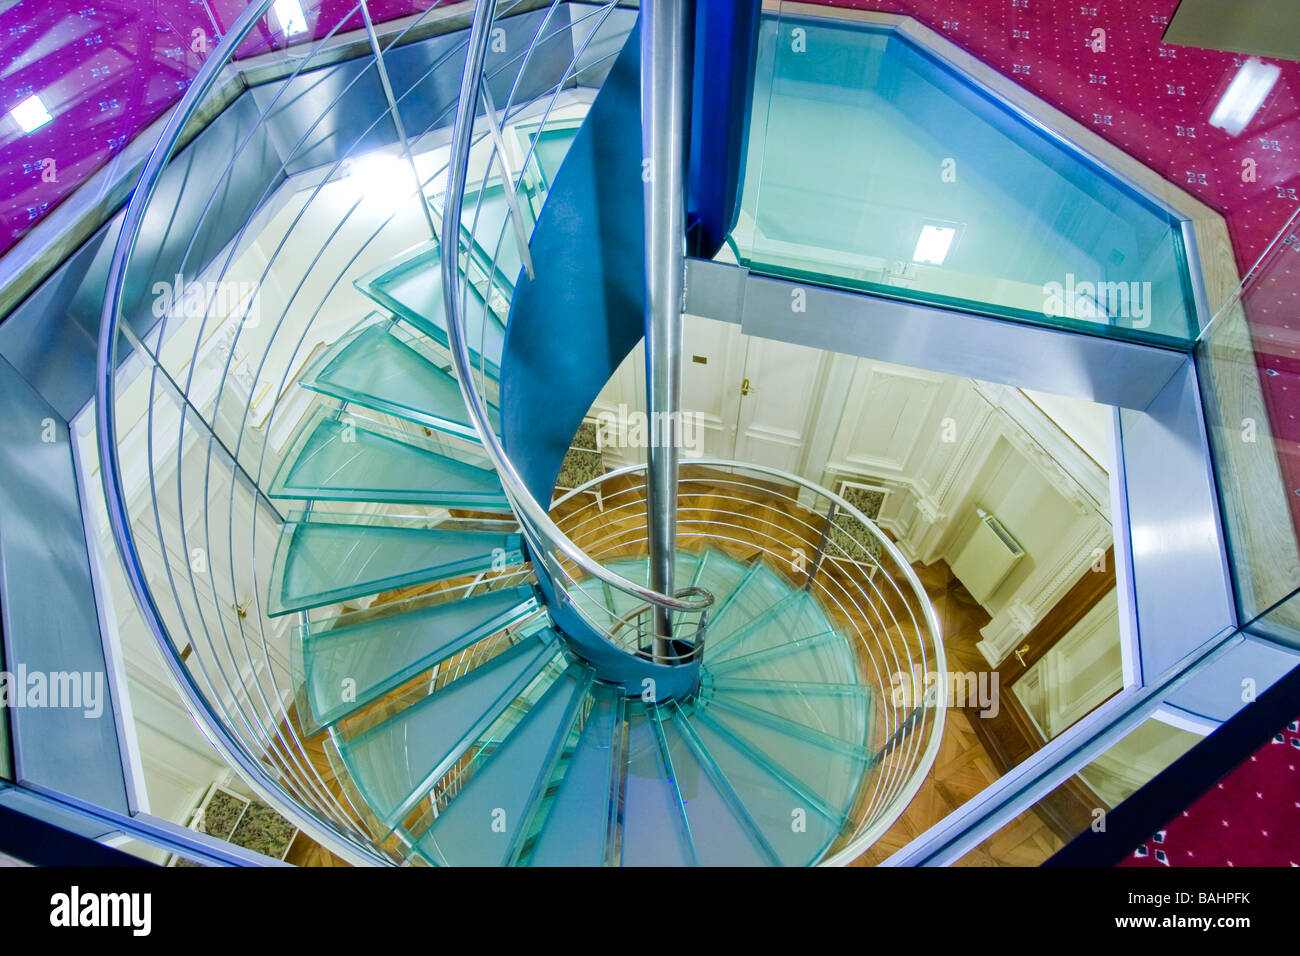 Modern spiral staircase - Stock Image